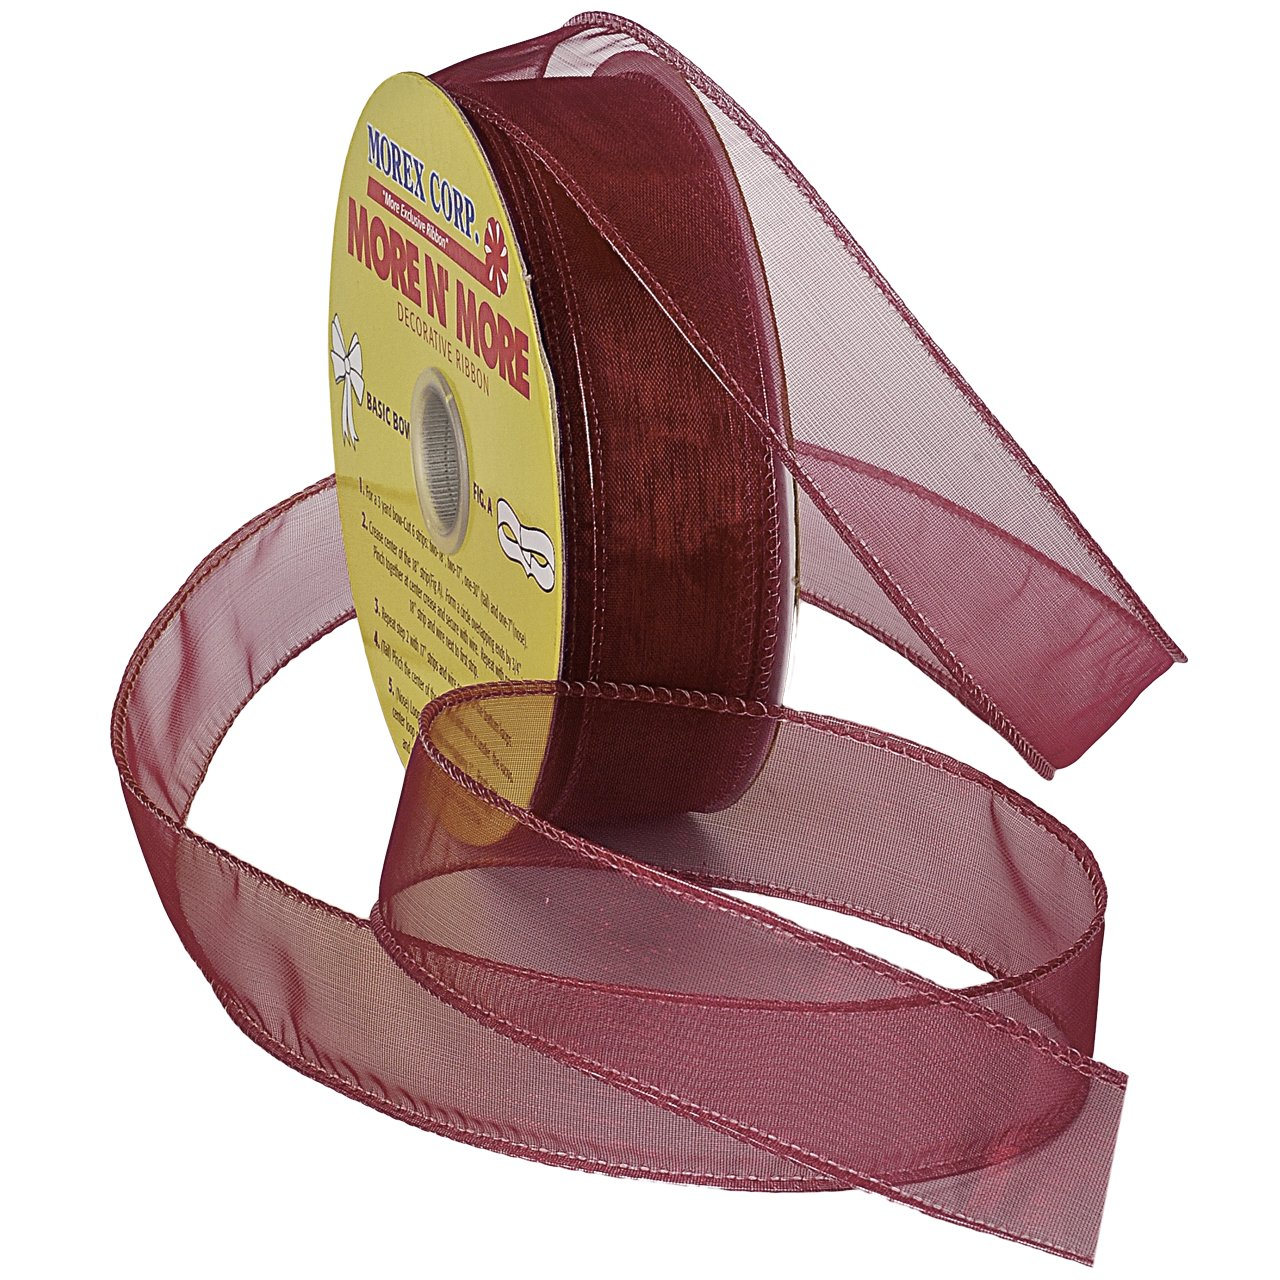 Morex Ribbon Wired 1-Inch Chiffon Ribbon with 25-Yard Spool, Burgundy by Morex Ribbon   B00D9JQNZU